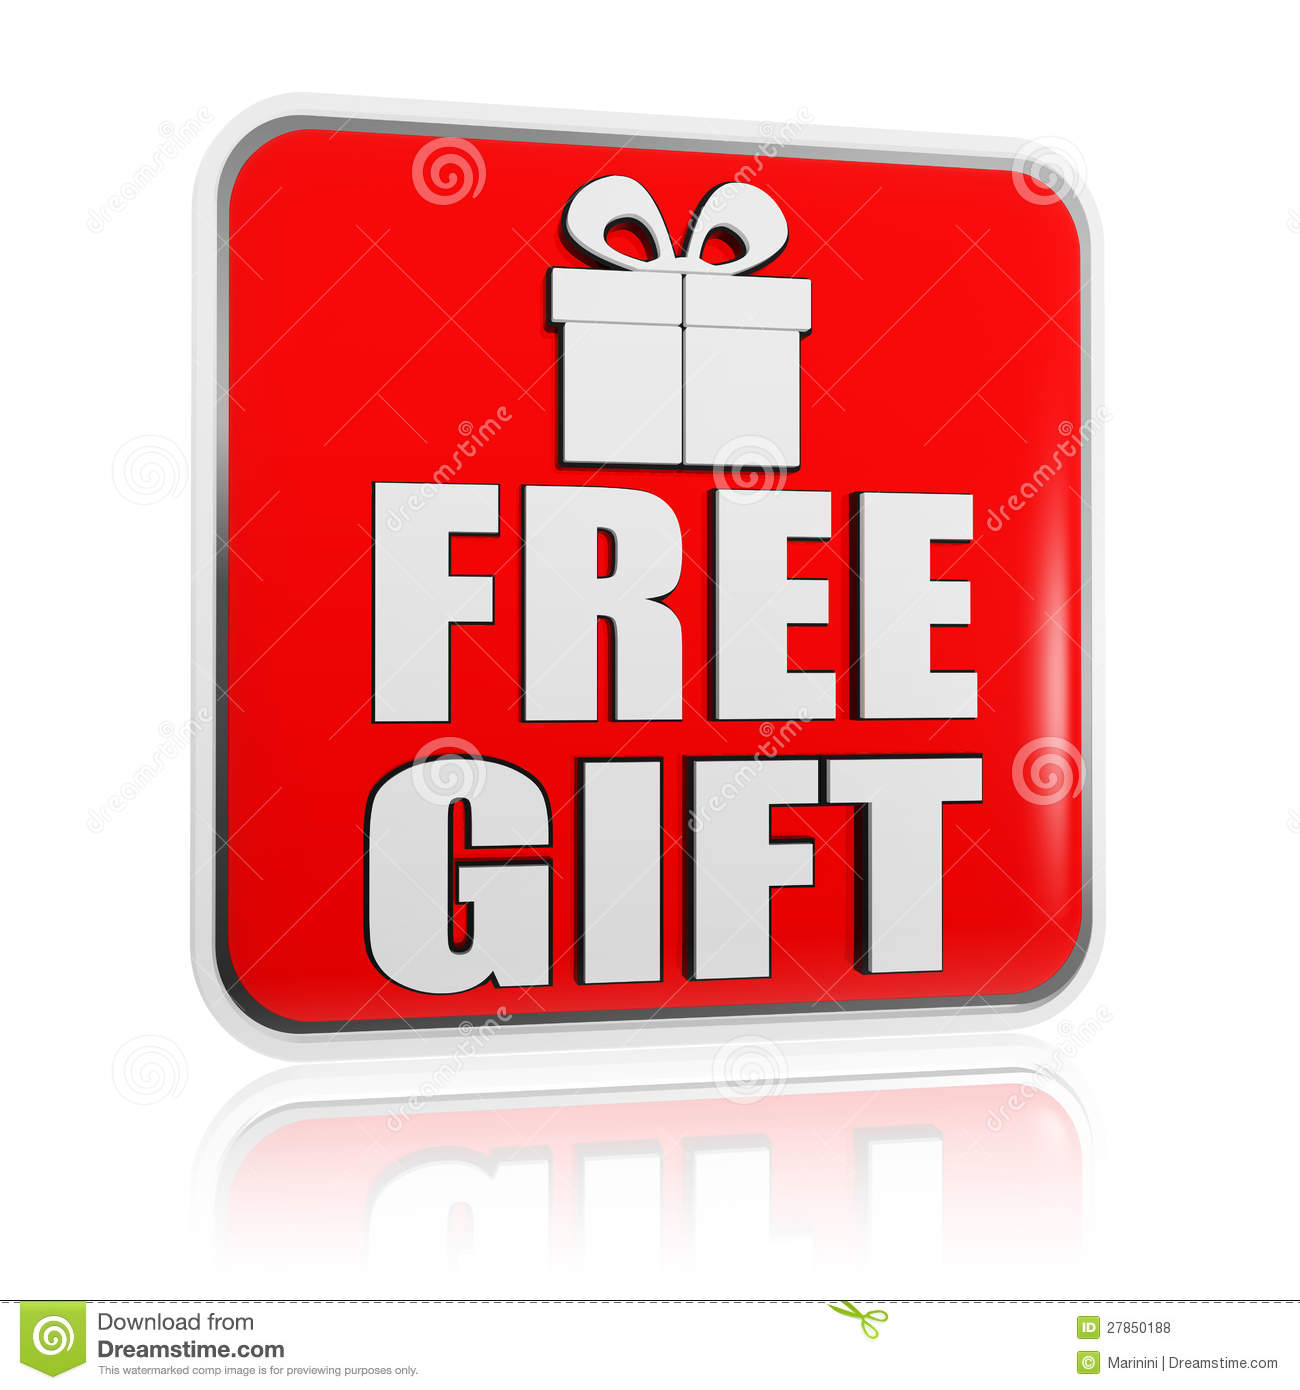 Free GIft Box Royalty Free Stock Photography - Image: 36898047